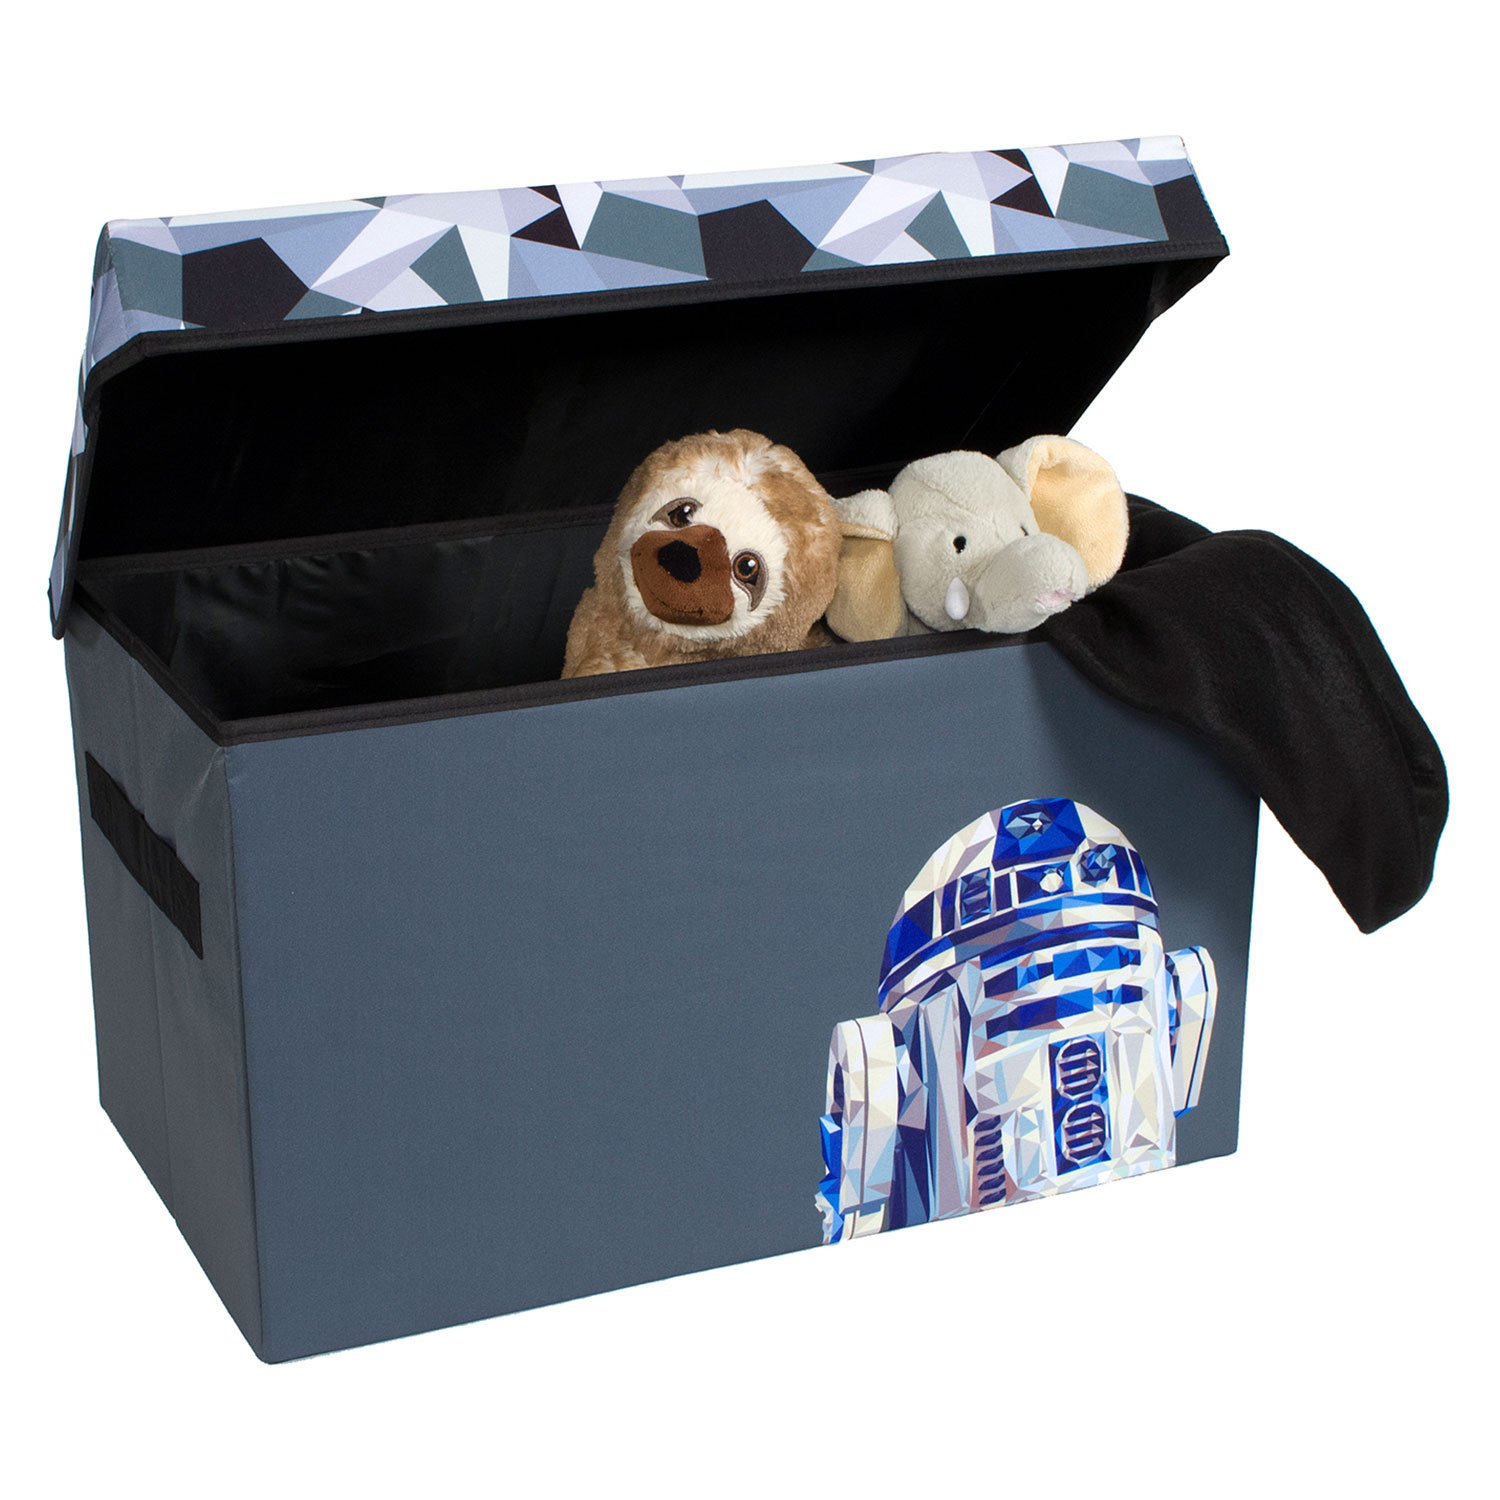 R2-D2 Collapsible Kids Toy Storage Chest by Disney Star Wars - Flip-Top Toy Organizer Bin for Closets, Kids Bedroom, Boys & Girls Toys - Foldable Toy Basket Organizer with Strong Handles & Design